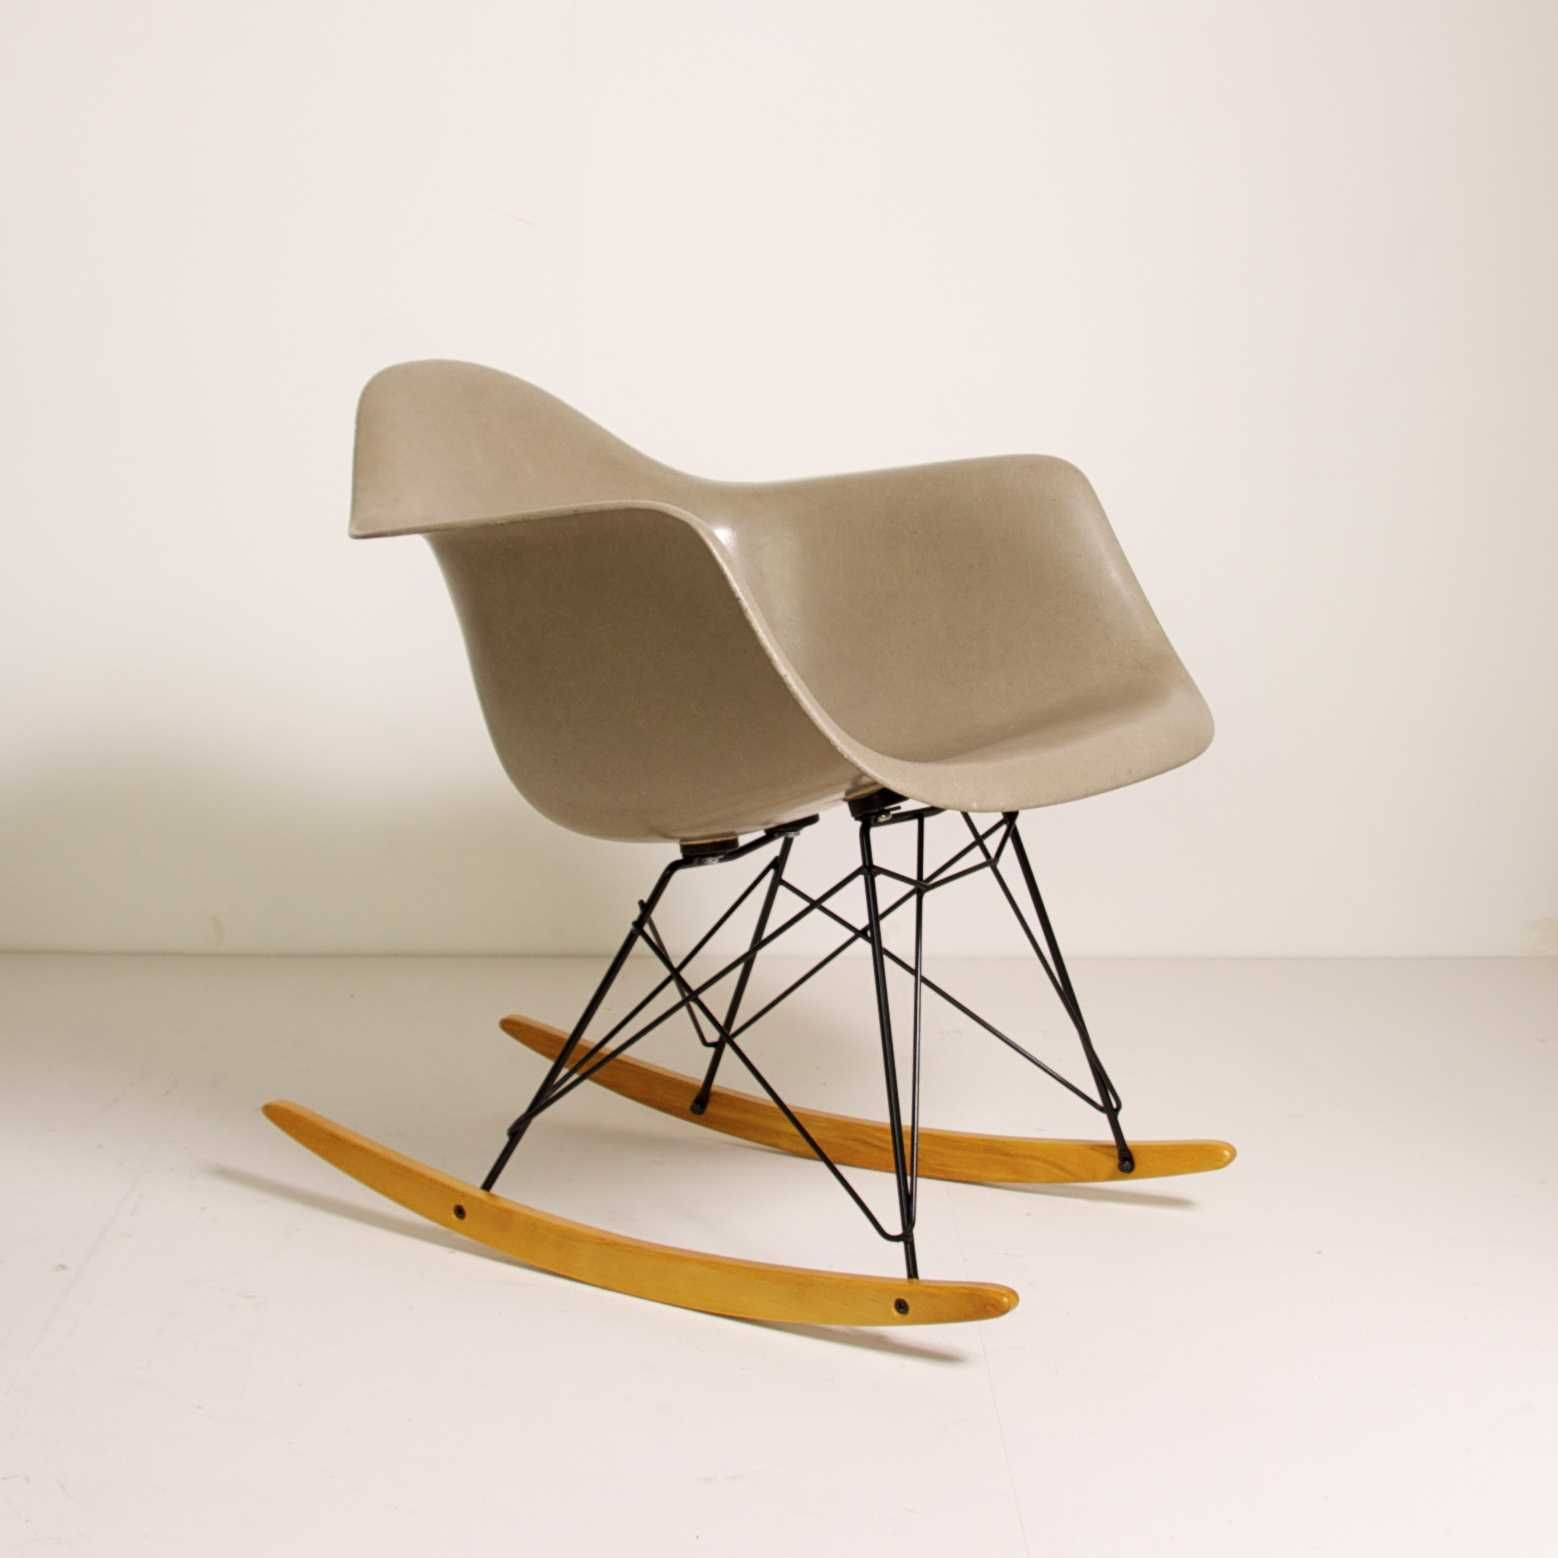 Pleasant Eames Chair Anthropologie Pintowin Sweet Dreams Eames Onthecornerstone Fun Painted Chair Ideas Images Onthecornerstoneorg